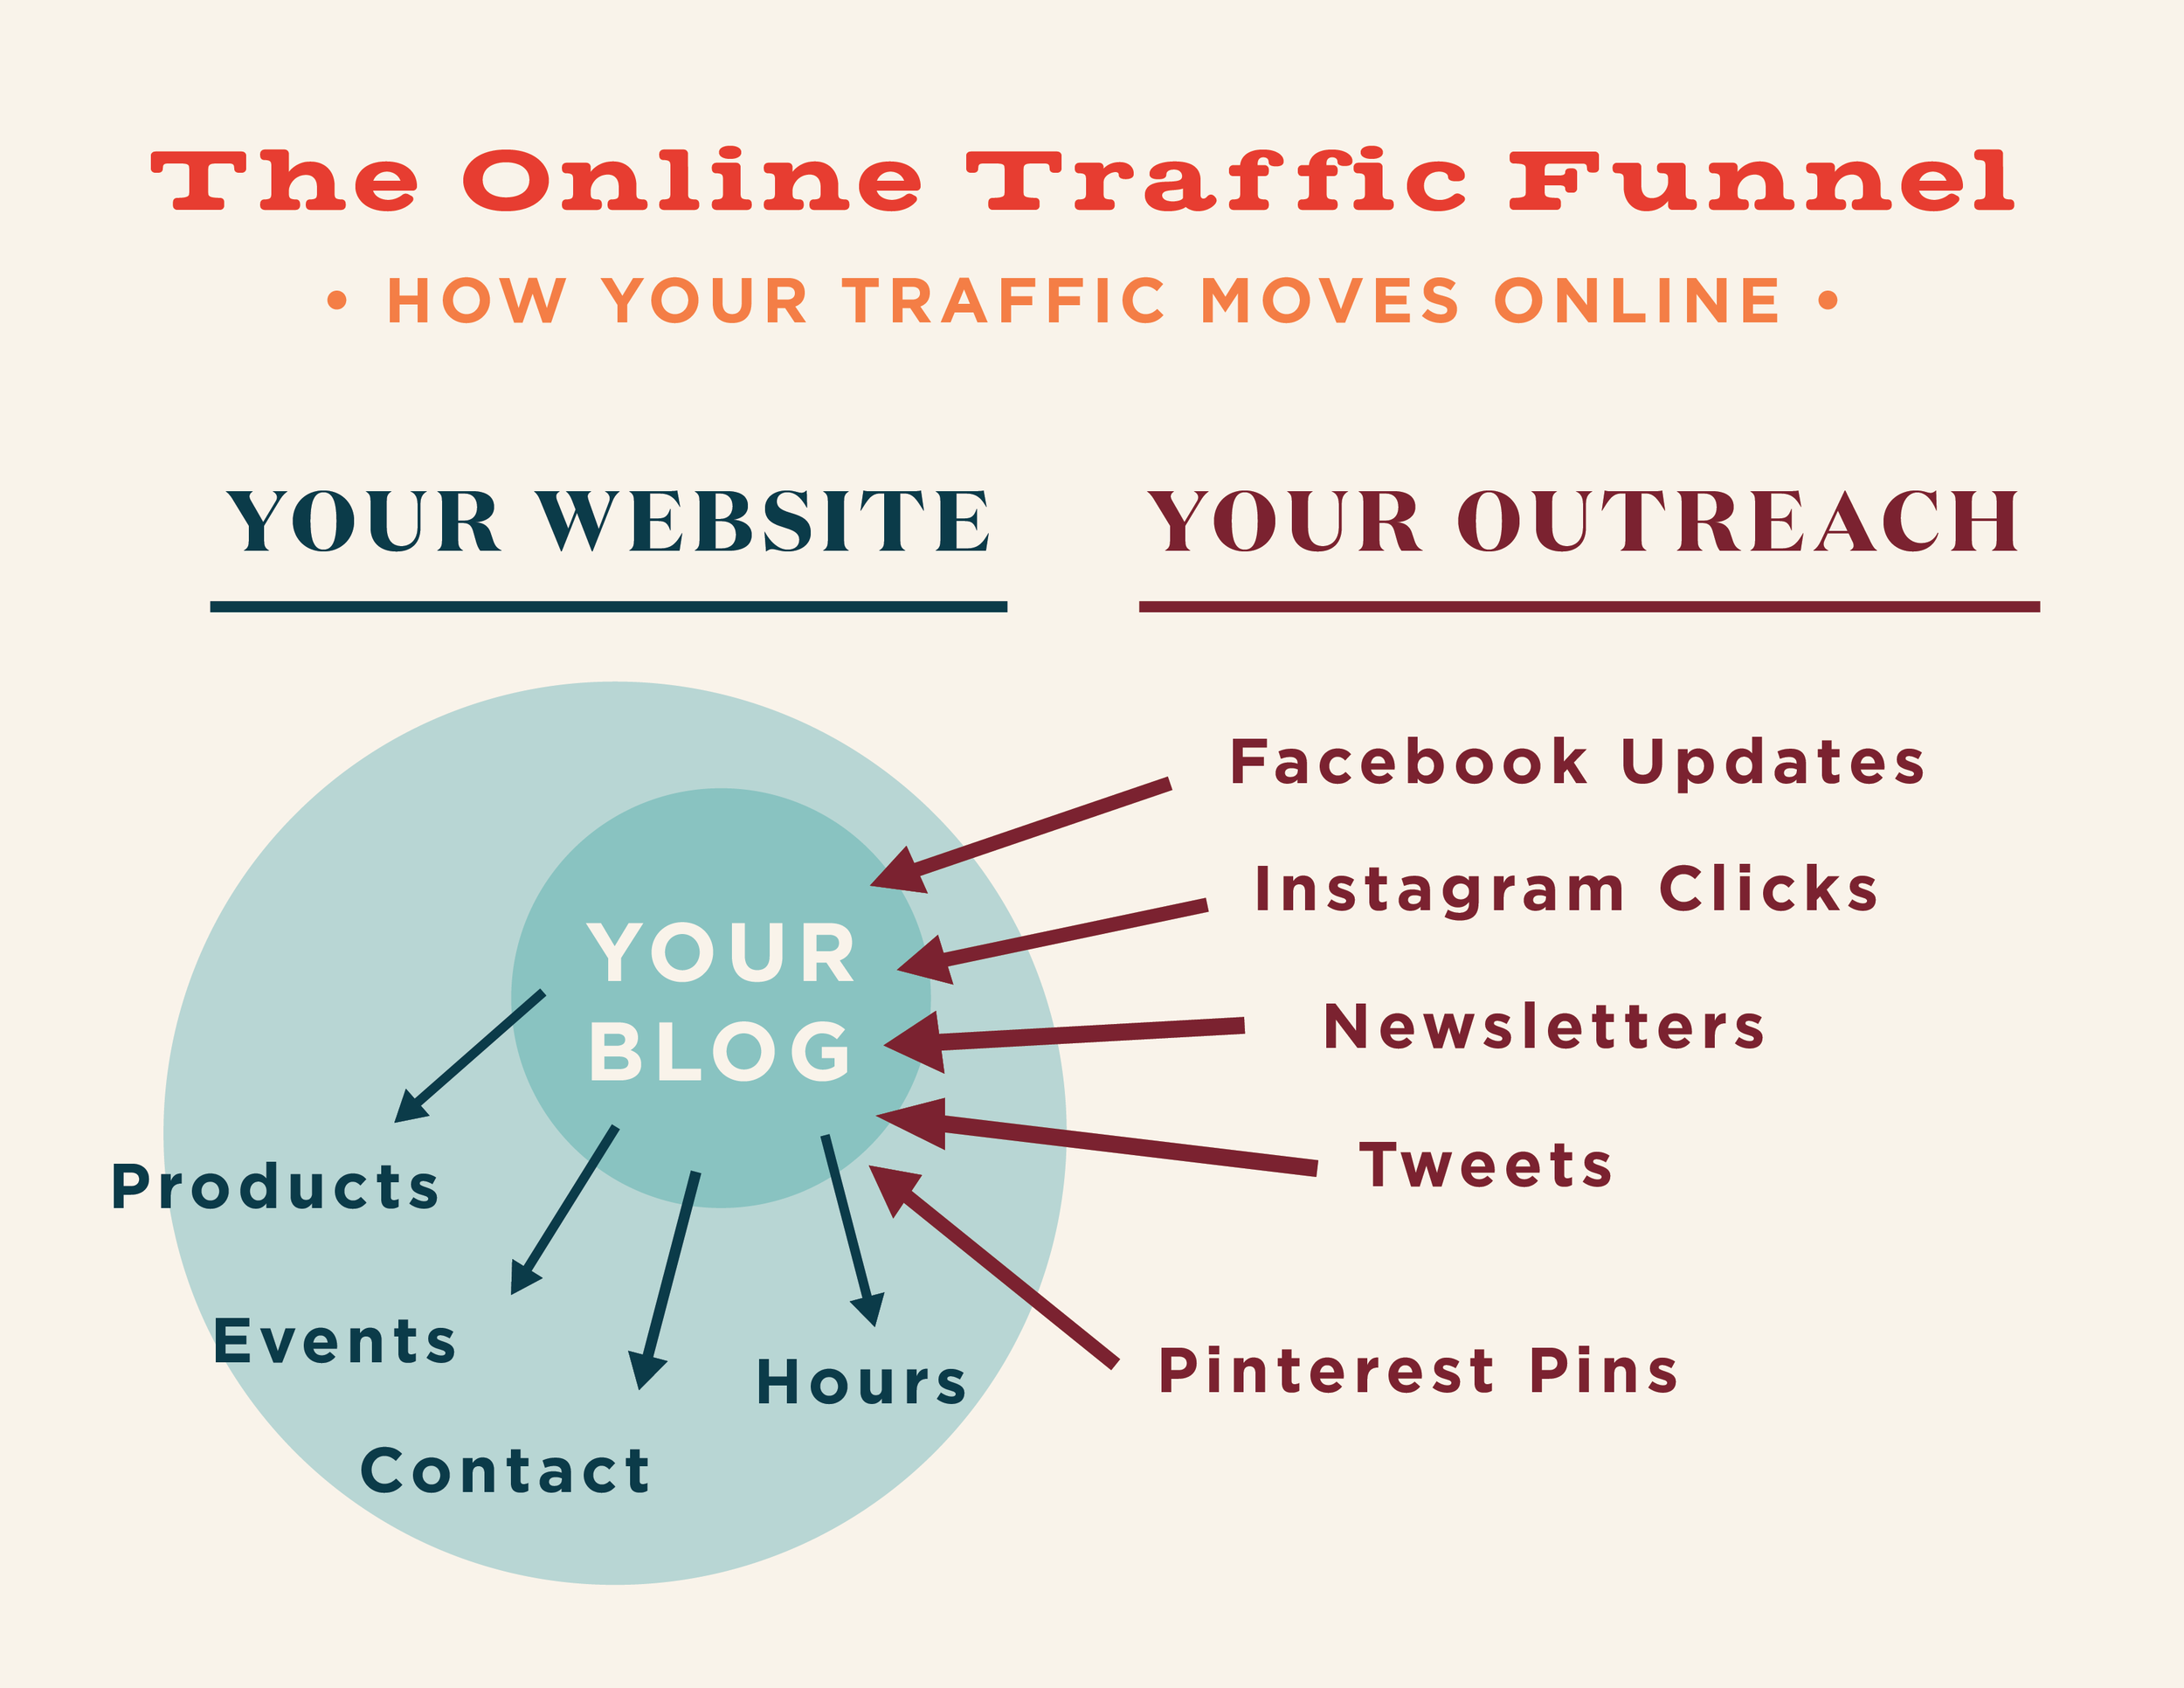 This online traffic funnel shows just how important blogging is for your web traffic: It should be the #1 point of contact for your customers' visits!